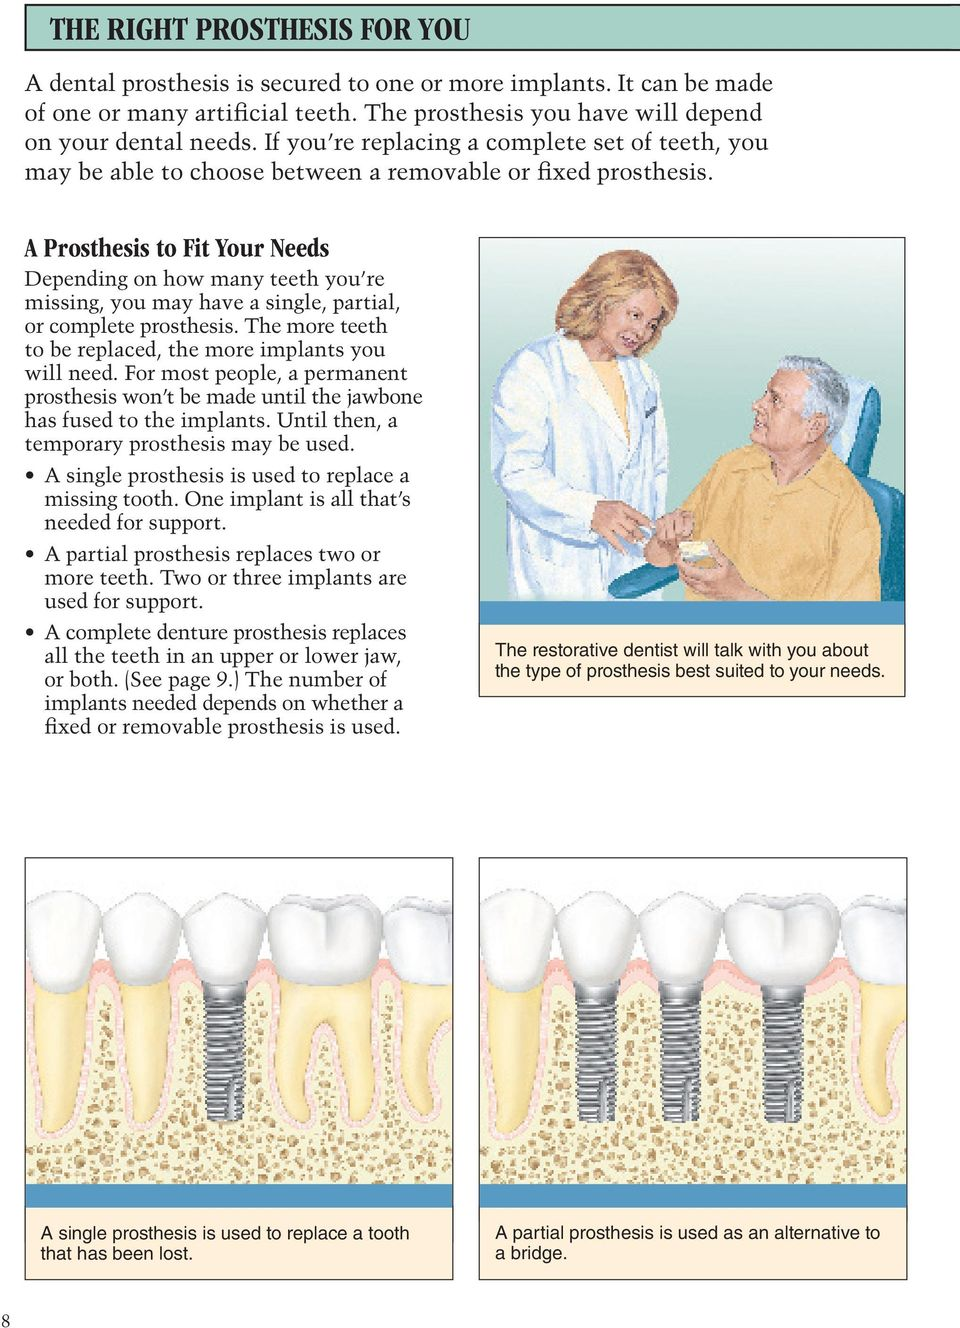 A Prosthesis to Fit Your Needs Depending on how many teeth you re missing, you may have a single, partial, or complete prosthesis. The more teeth to be replaced, the more implants you will need.